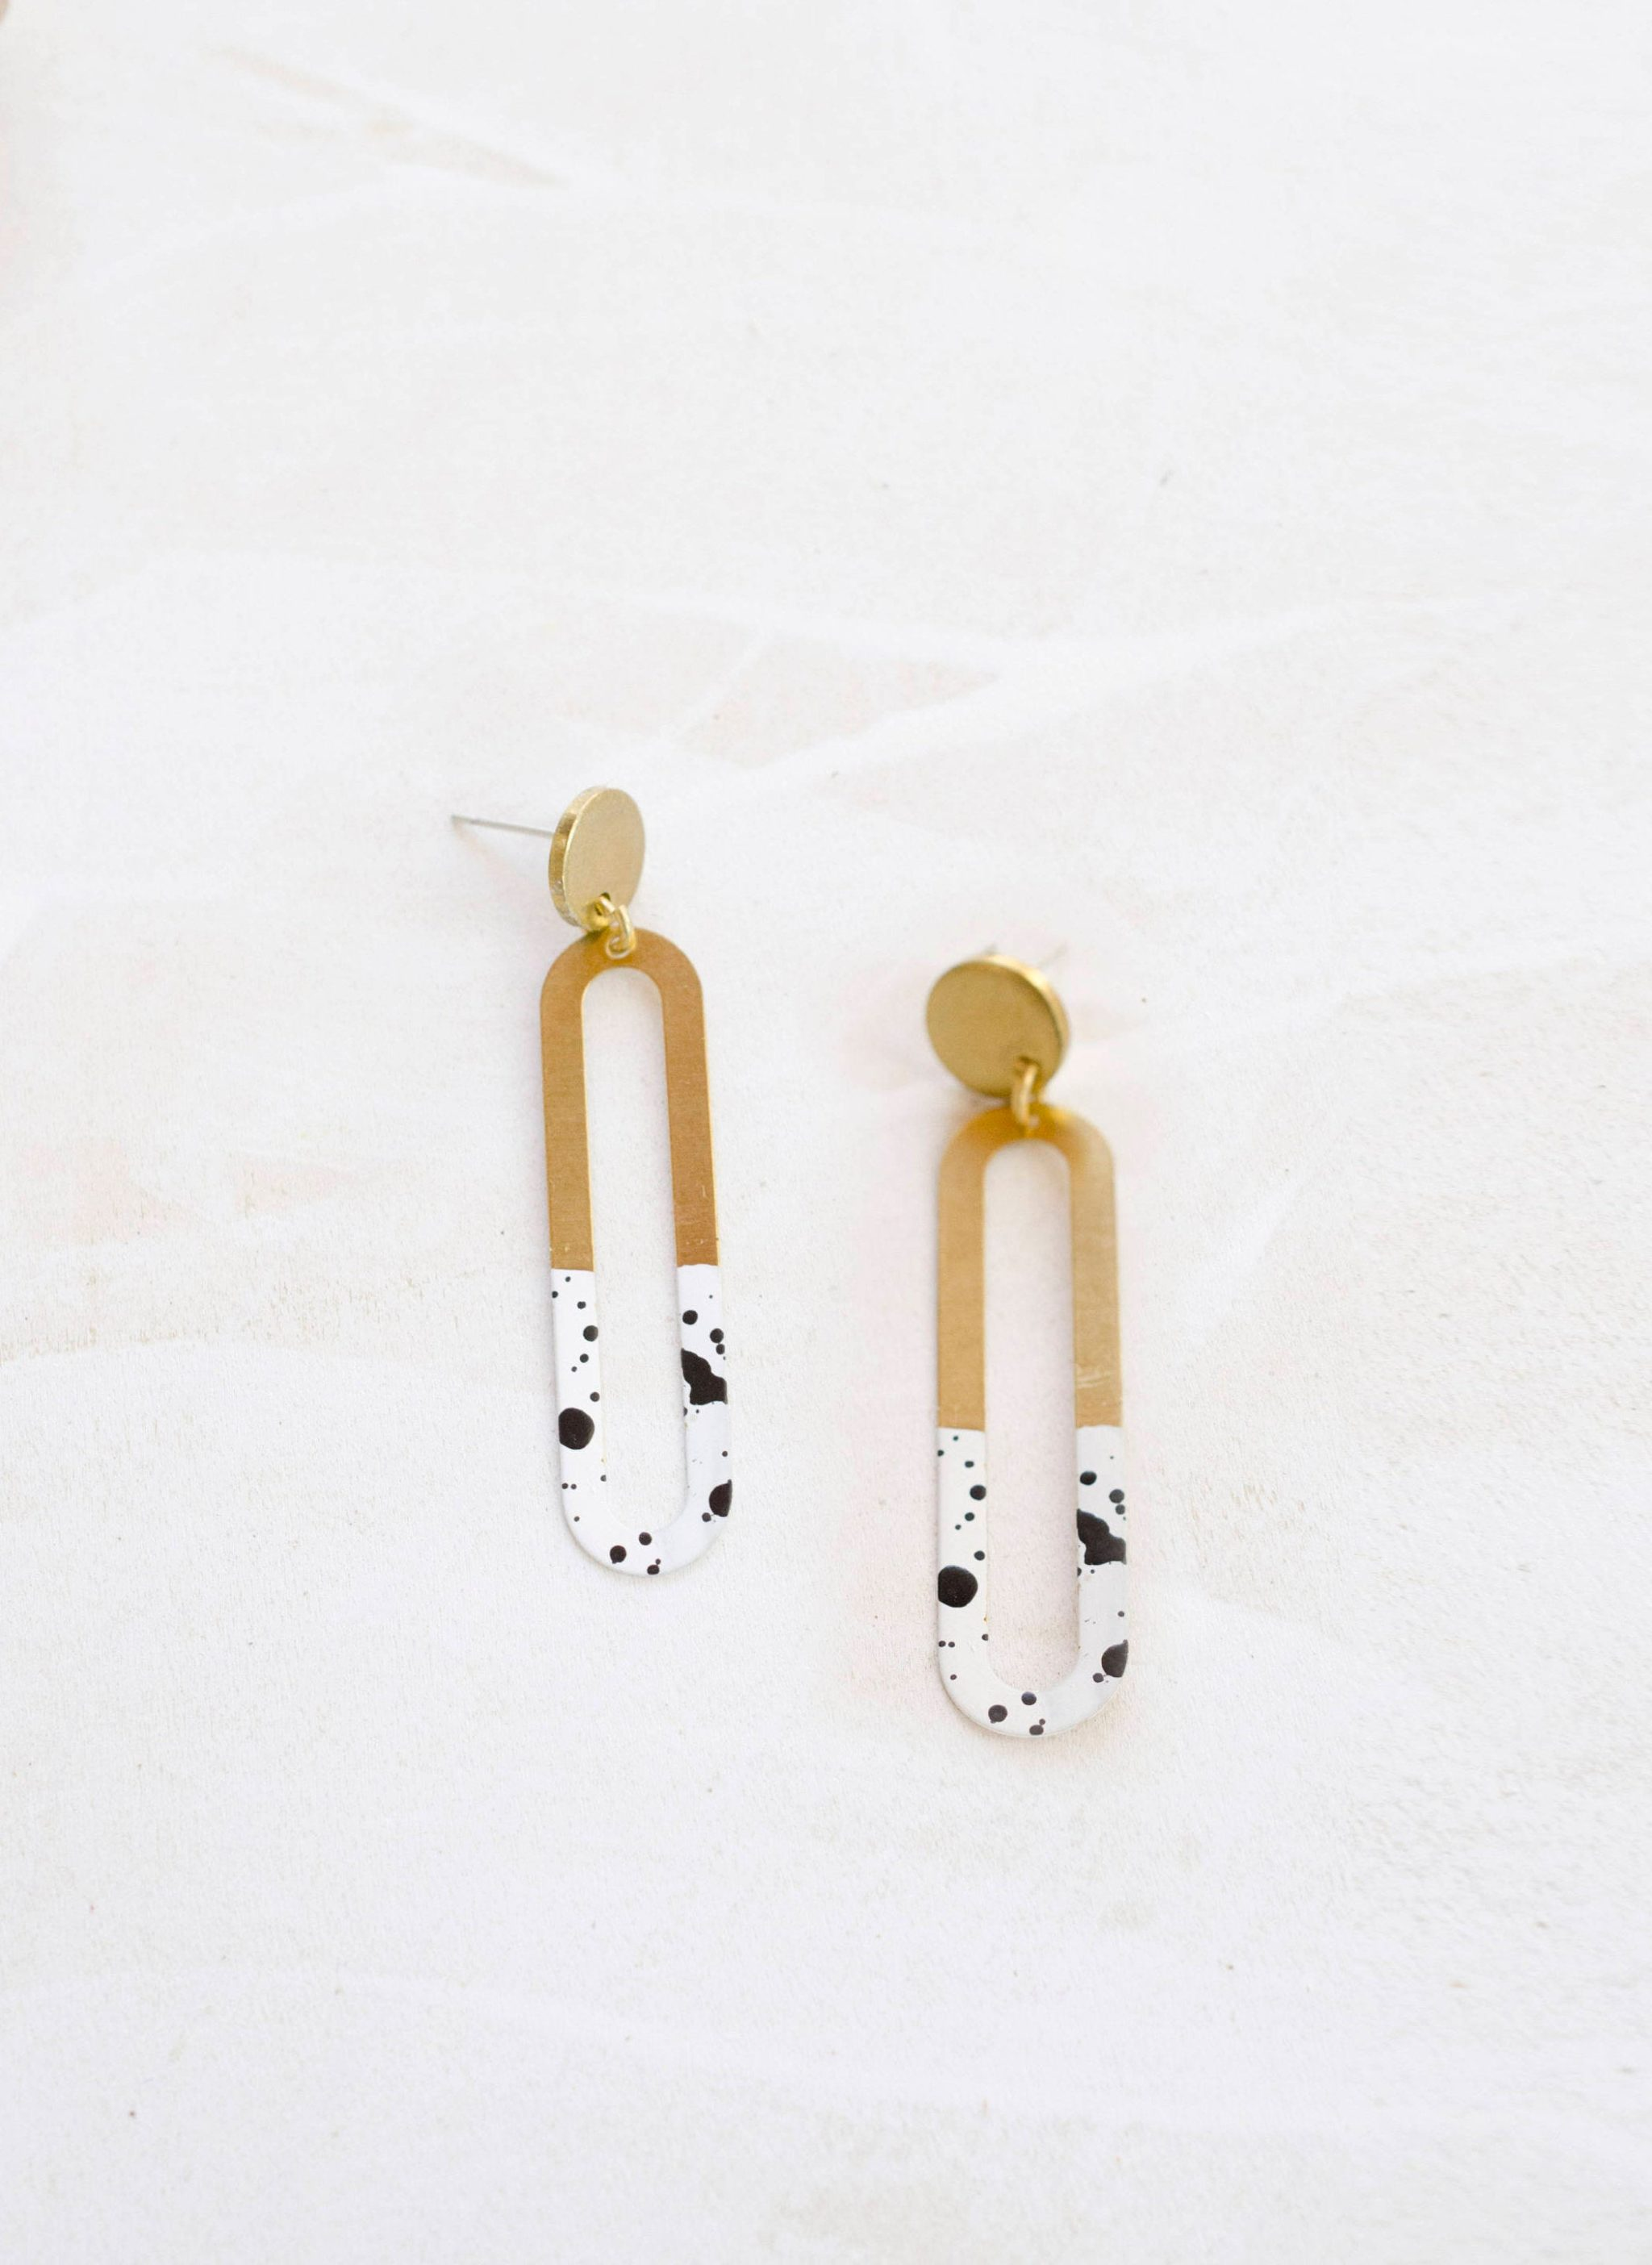 Earrings that are half brass and half speckled pattern.